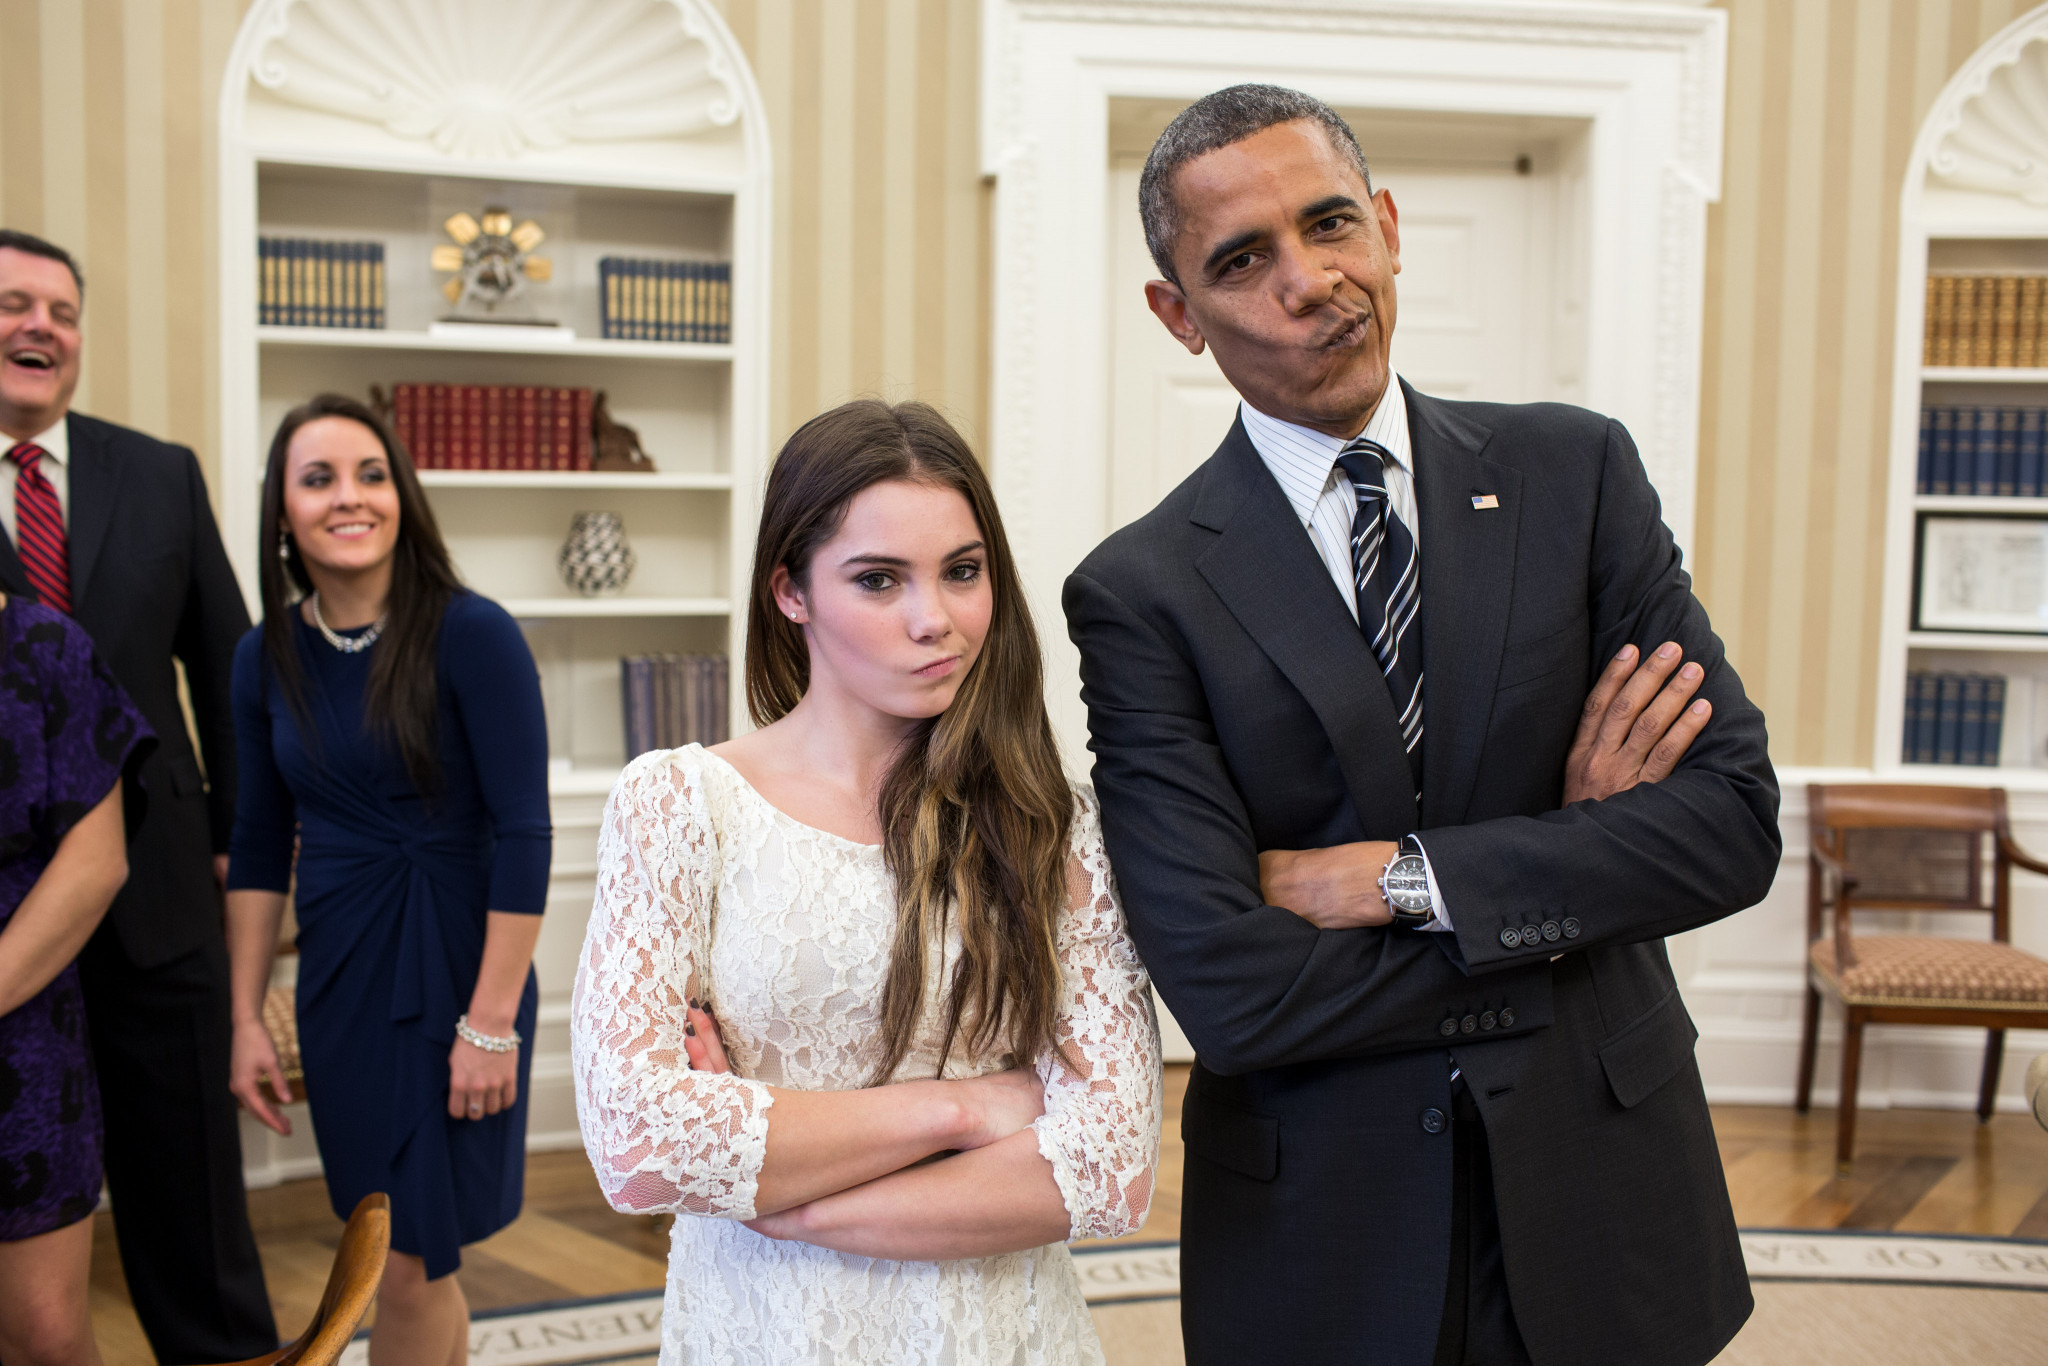 McKayla Maroney, seen here meeting former United States President Barack Obama in the White House, won Olympic team gold and individual vault silver medals at London 2012 ©Getty Images